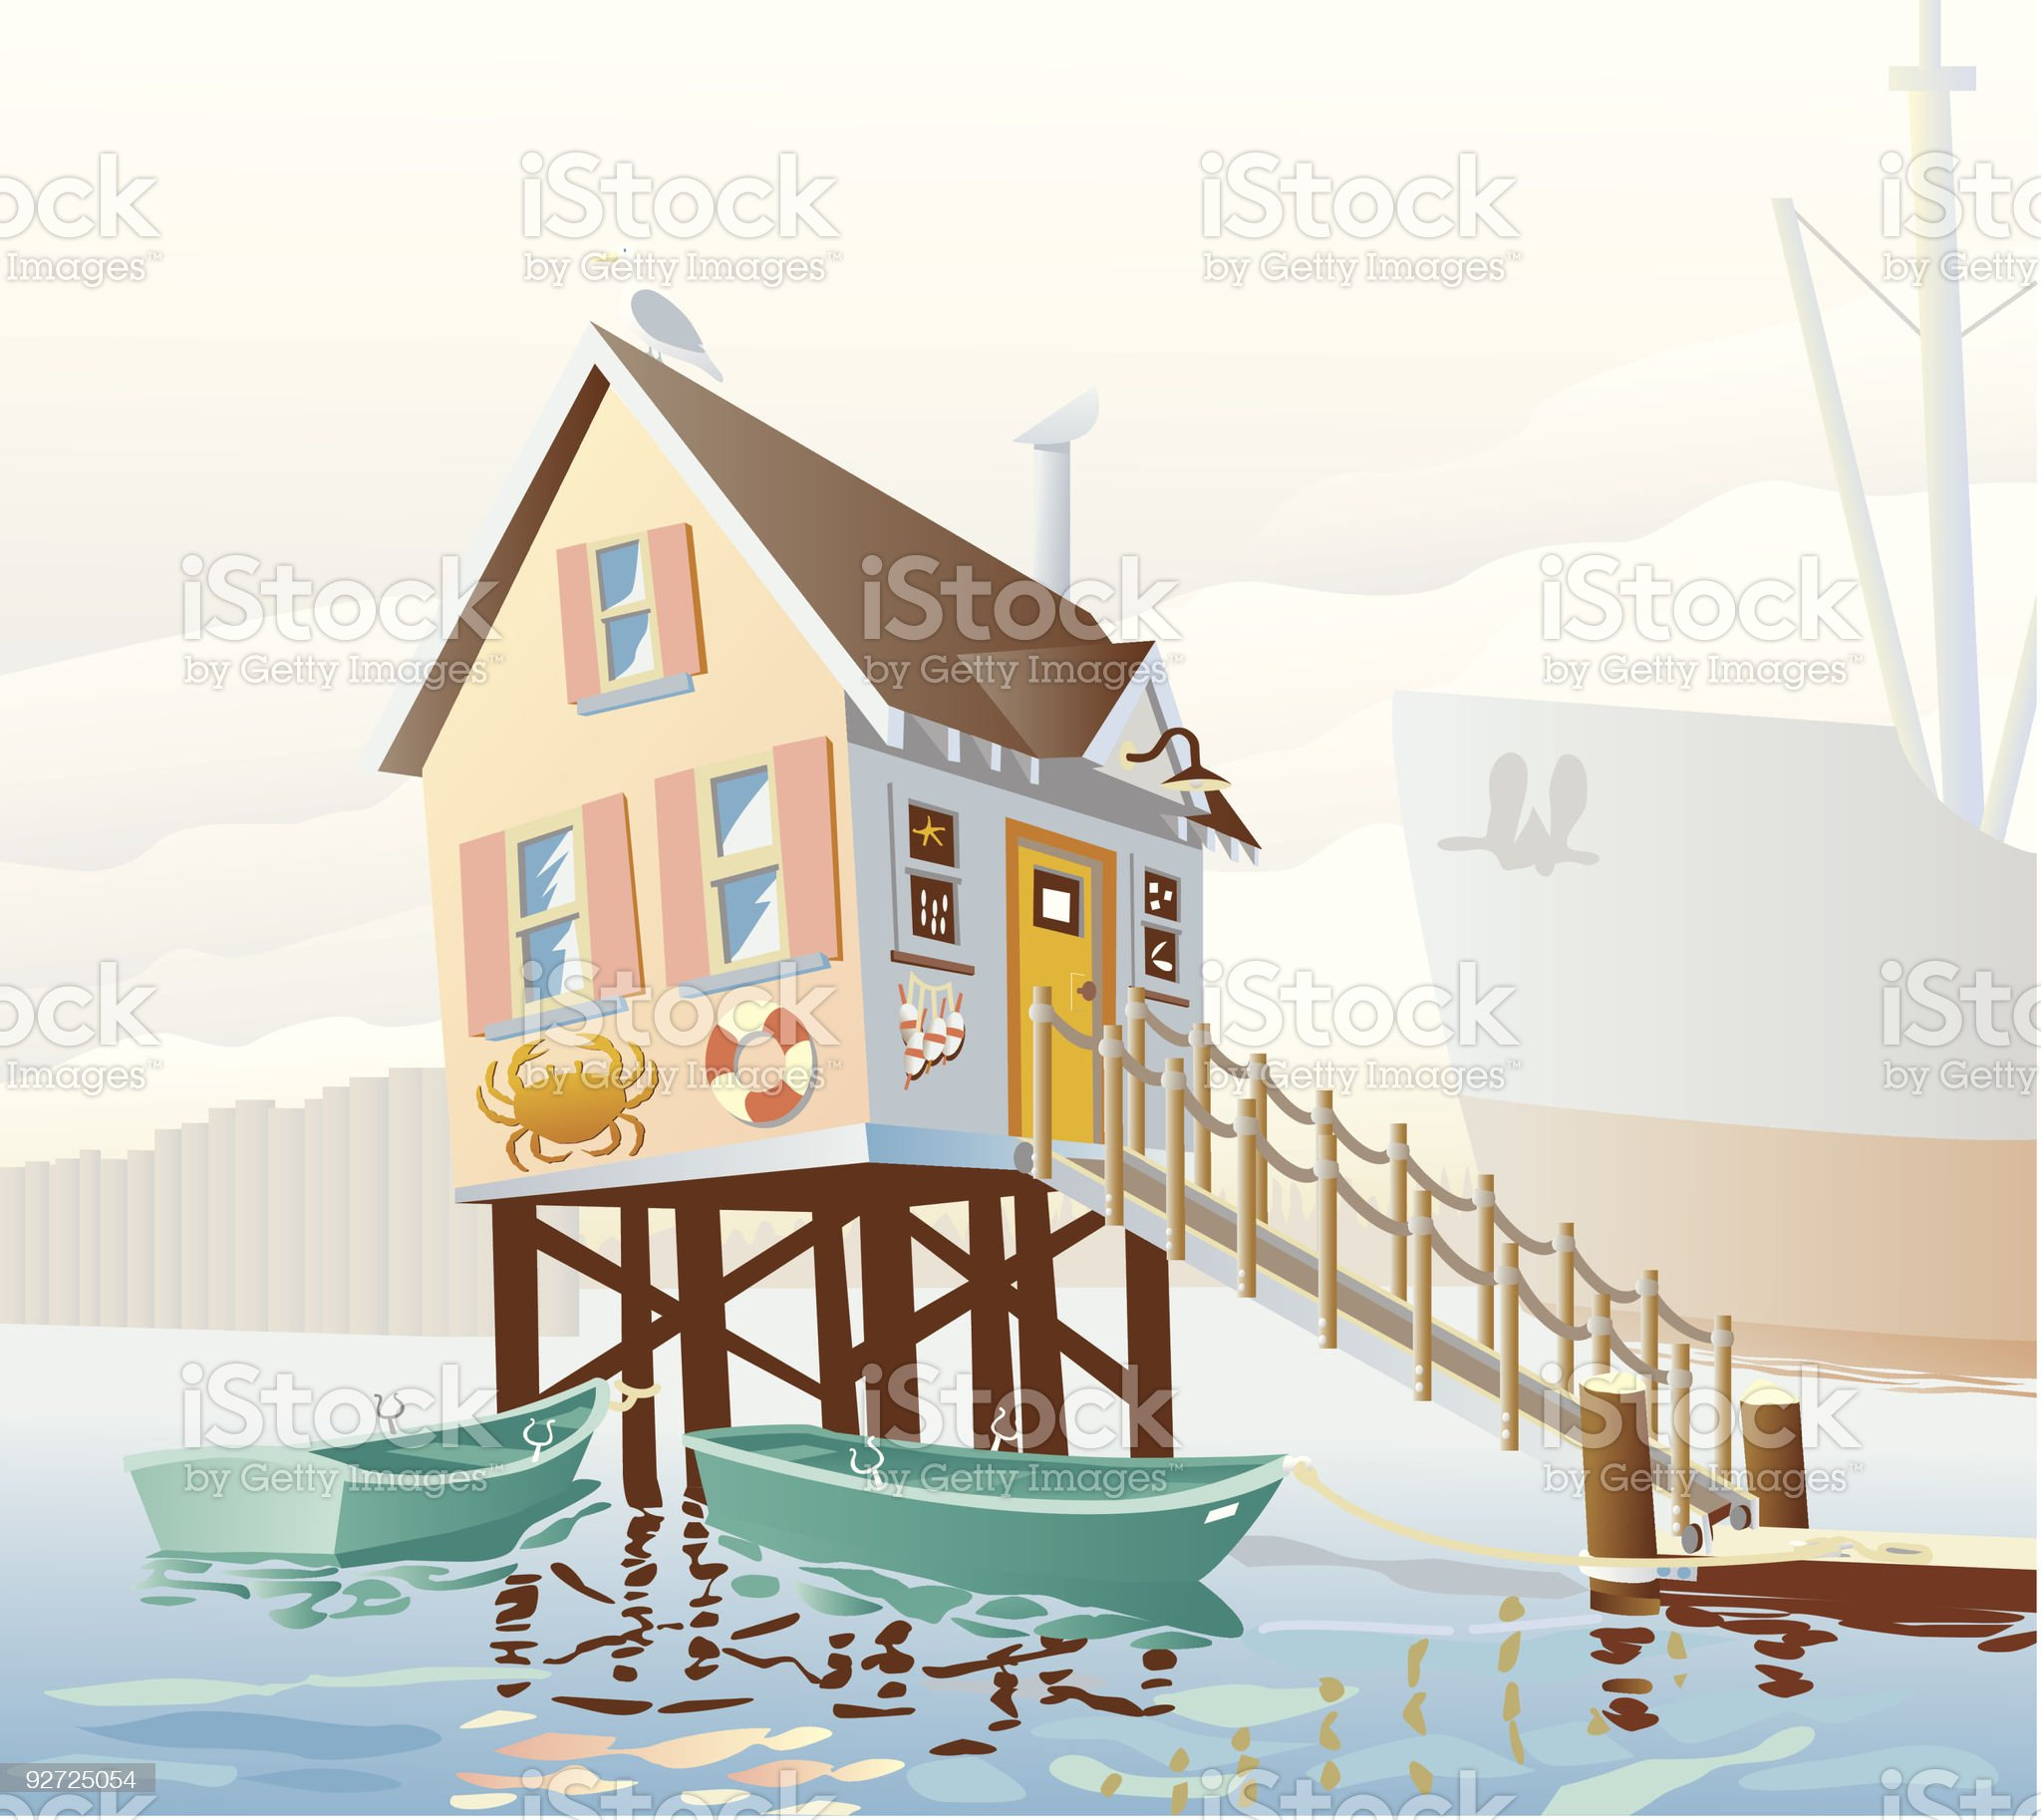 Fishing Bait and Crab Boat  Business royalty-free stock vector art